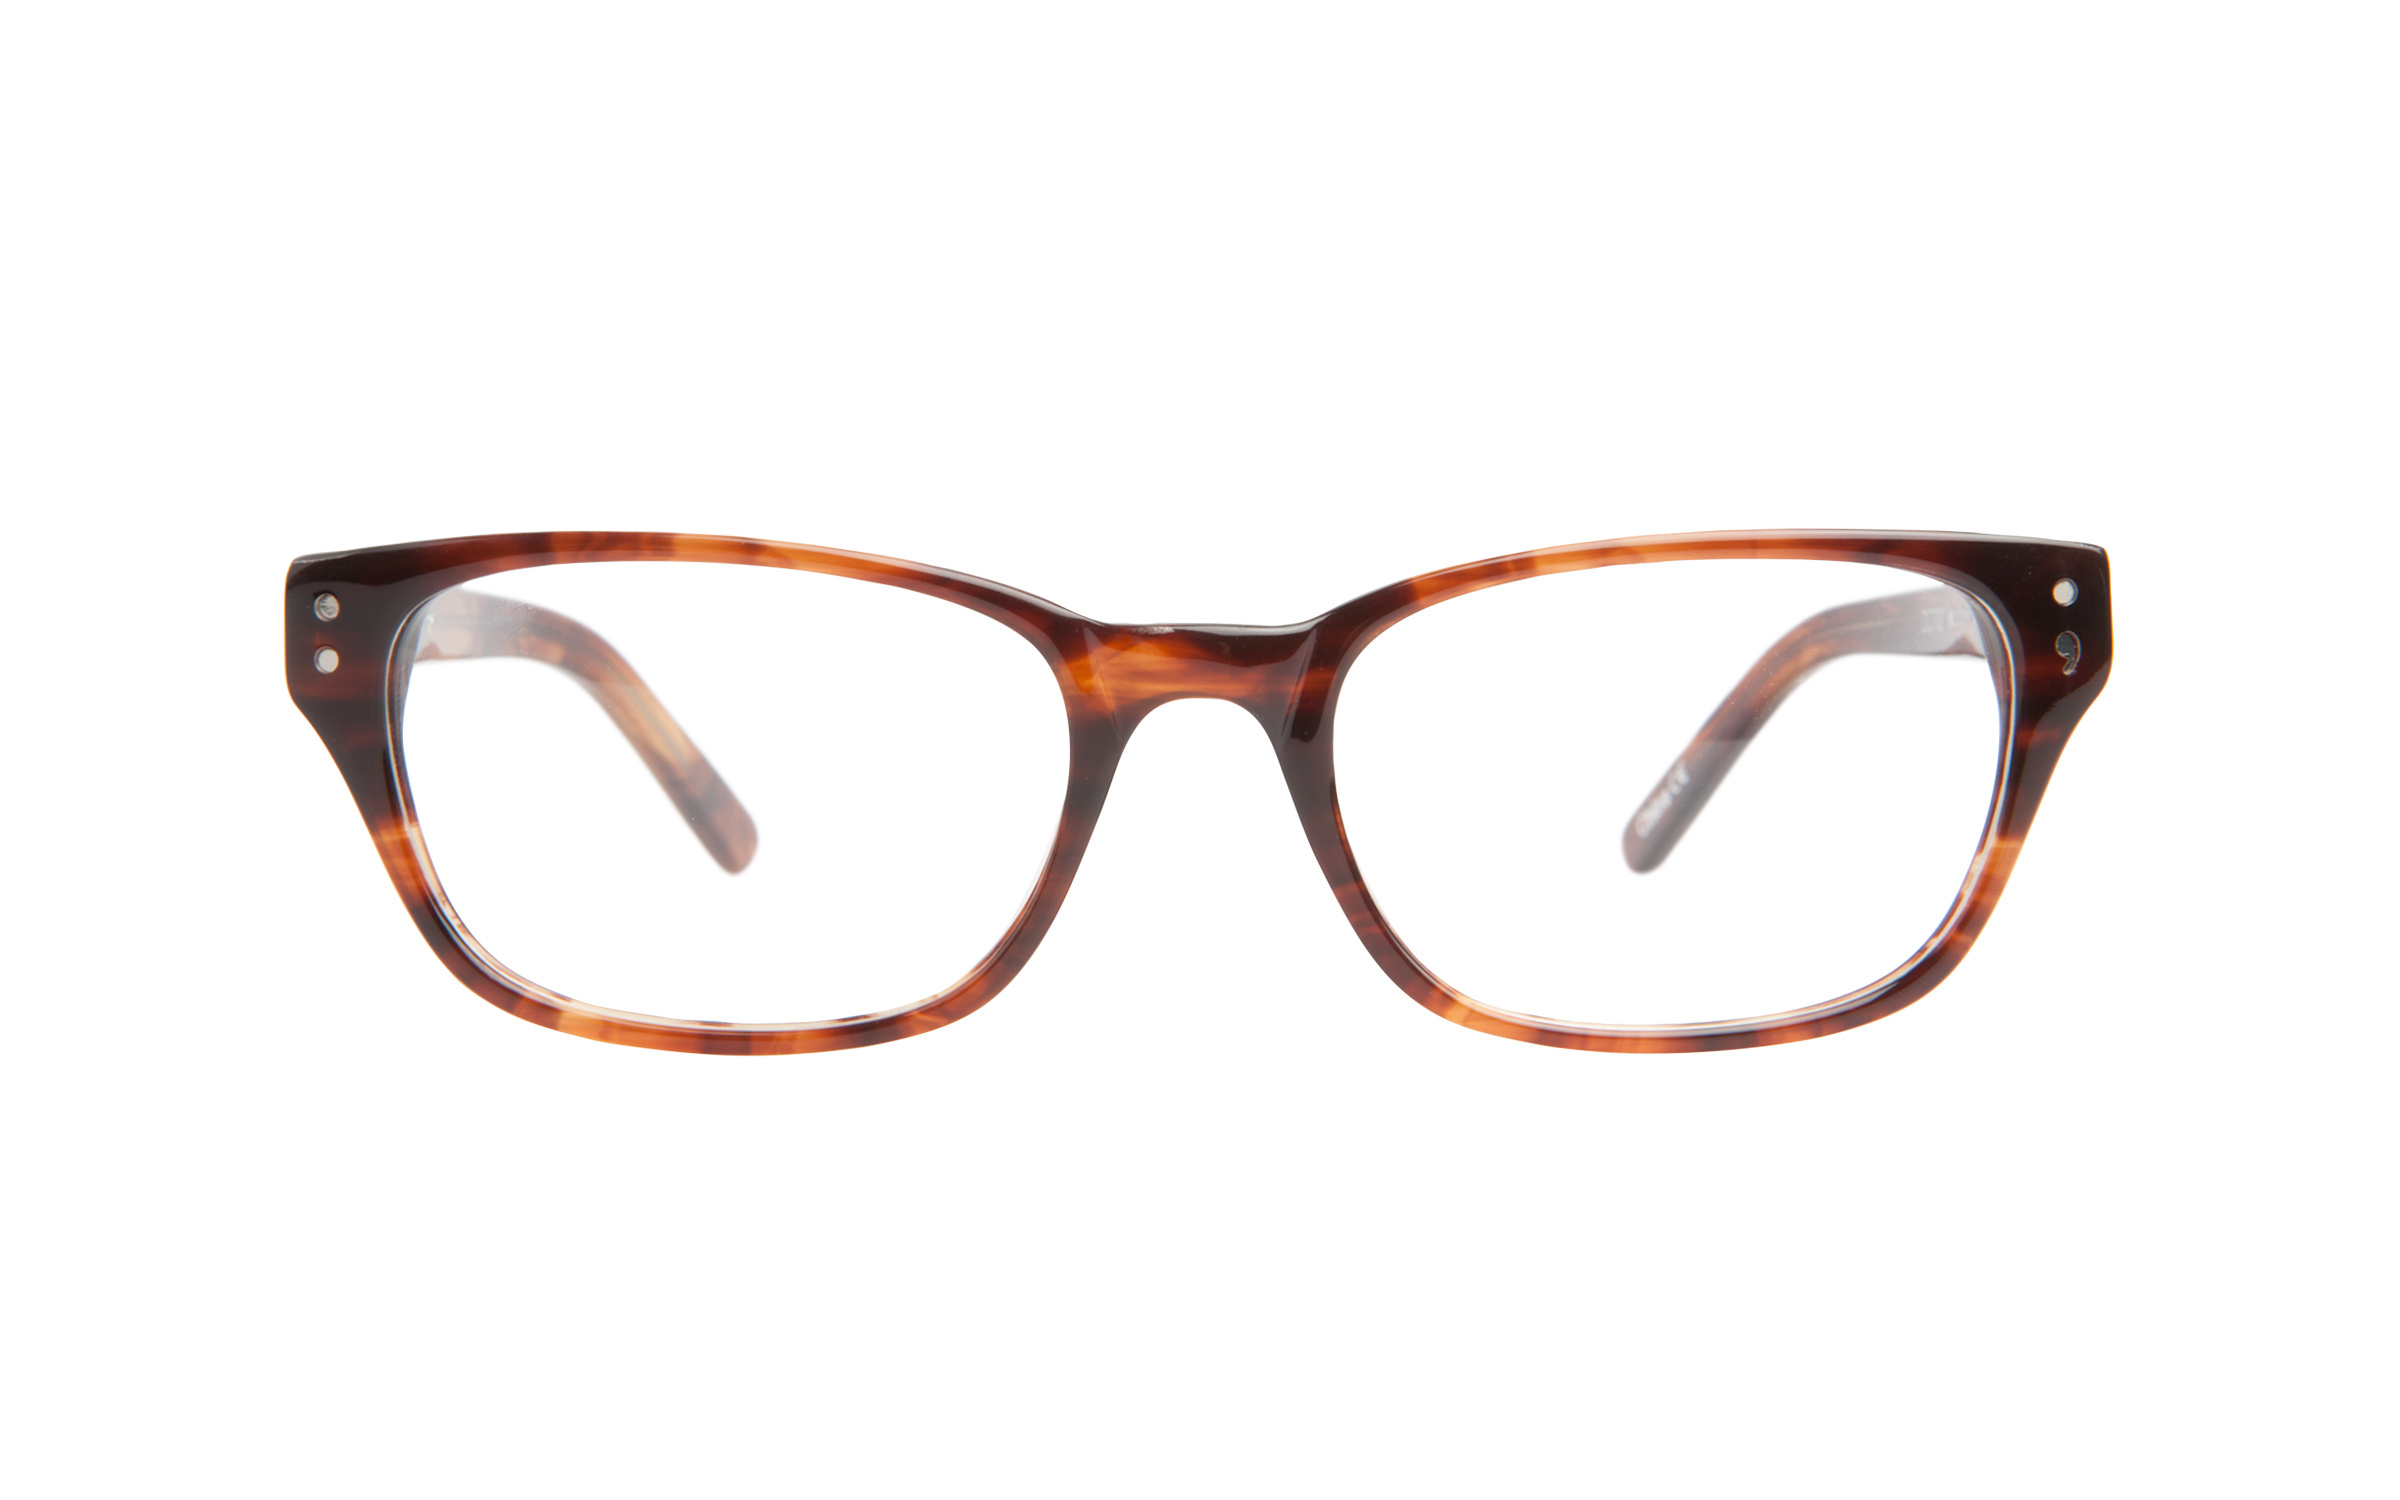 Derek_Cardigan_Glasses_Geek_Brown_Online_Coastal